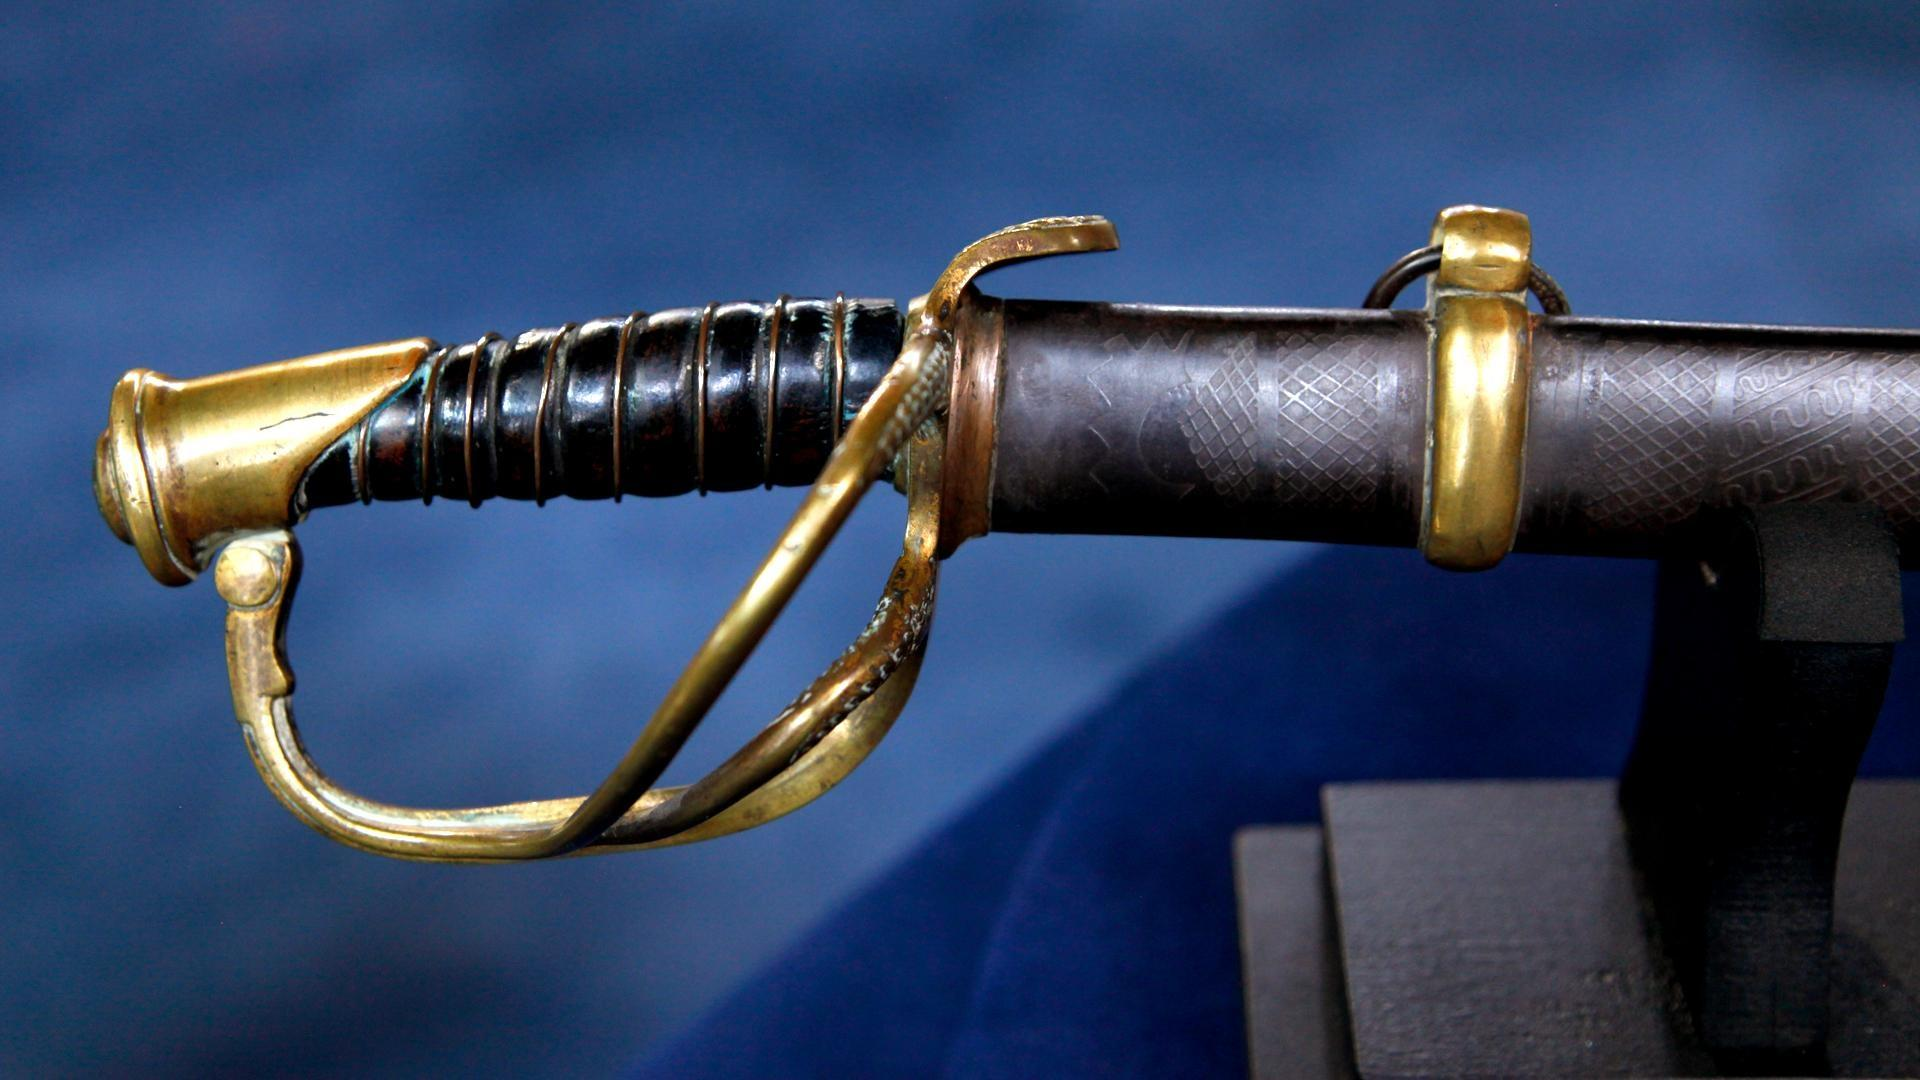 Antiques Roadshow - Appraisal: W. J. McElroy Confederate Officer's Sword with... - Twin Cities PBS